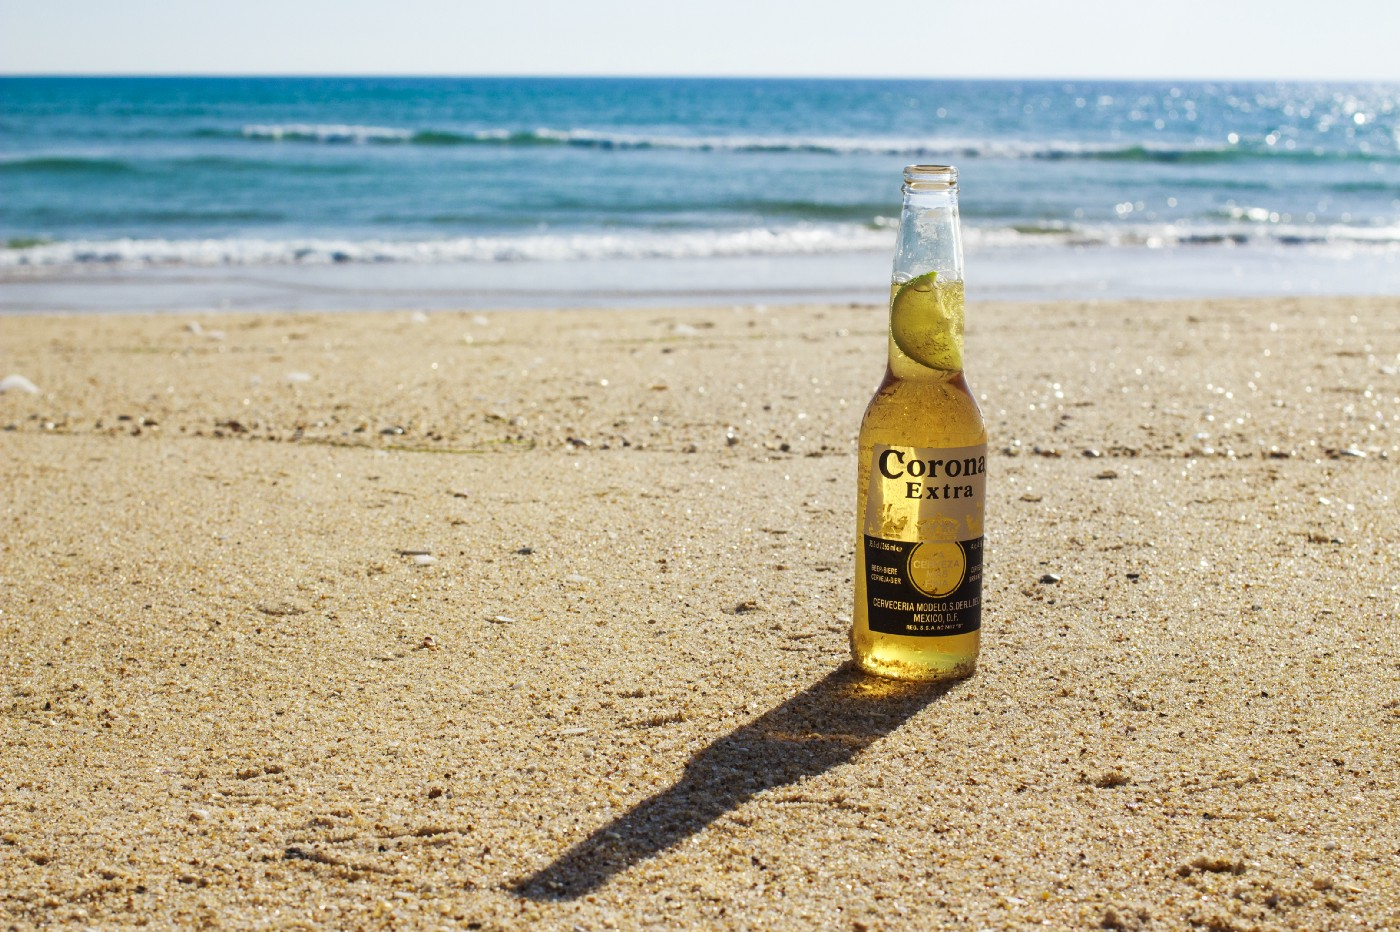 A bottle of Corona Extra with a lime wedge in the neck sits alone on a sandy beach by the water